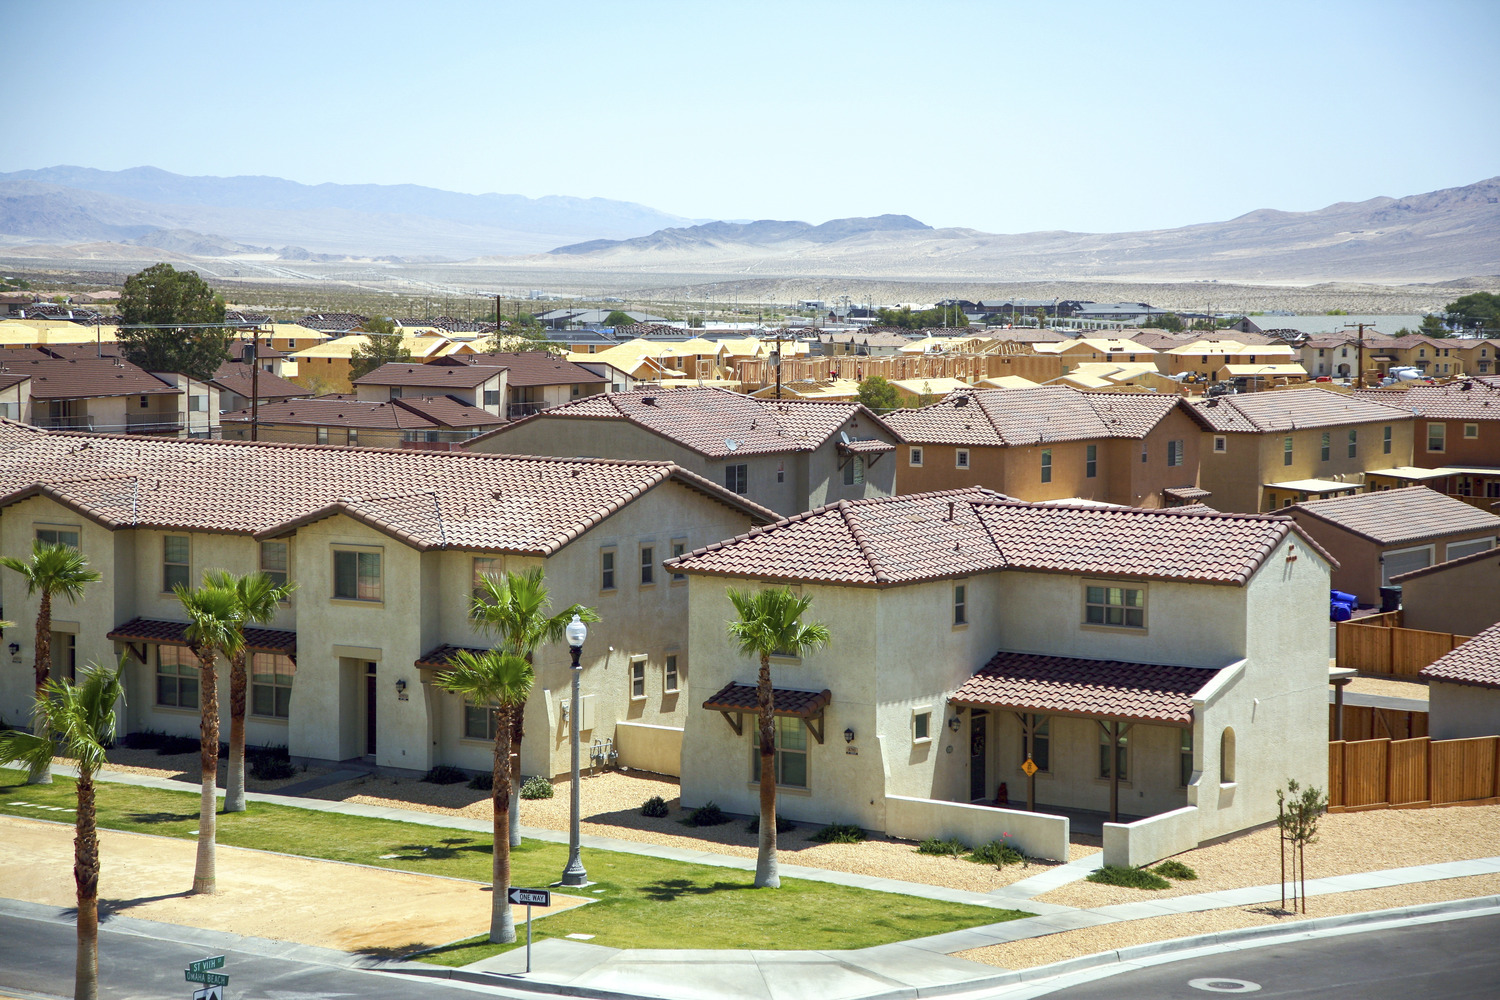 CBG builds The Villages at Fort Irwin, a 807 New Military Homes and 200 Senior Unaccompanied Housing Units in Fort Irwin, CA